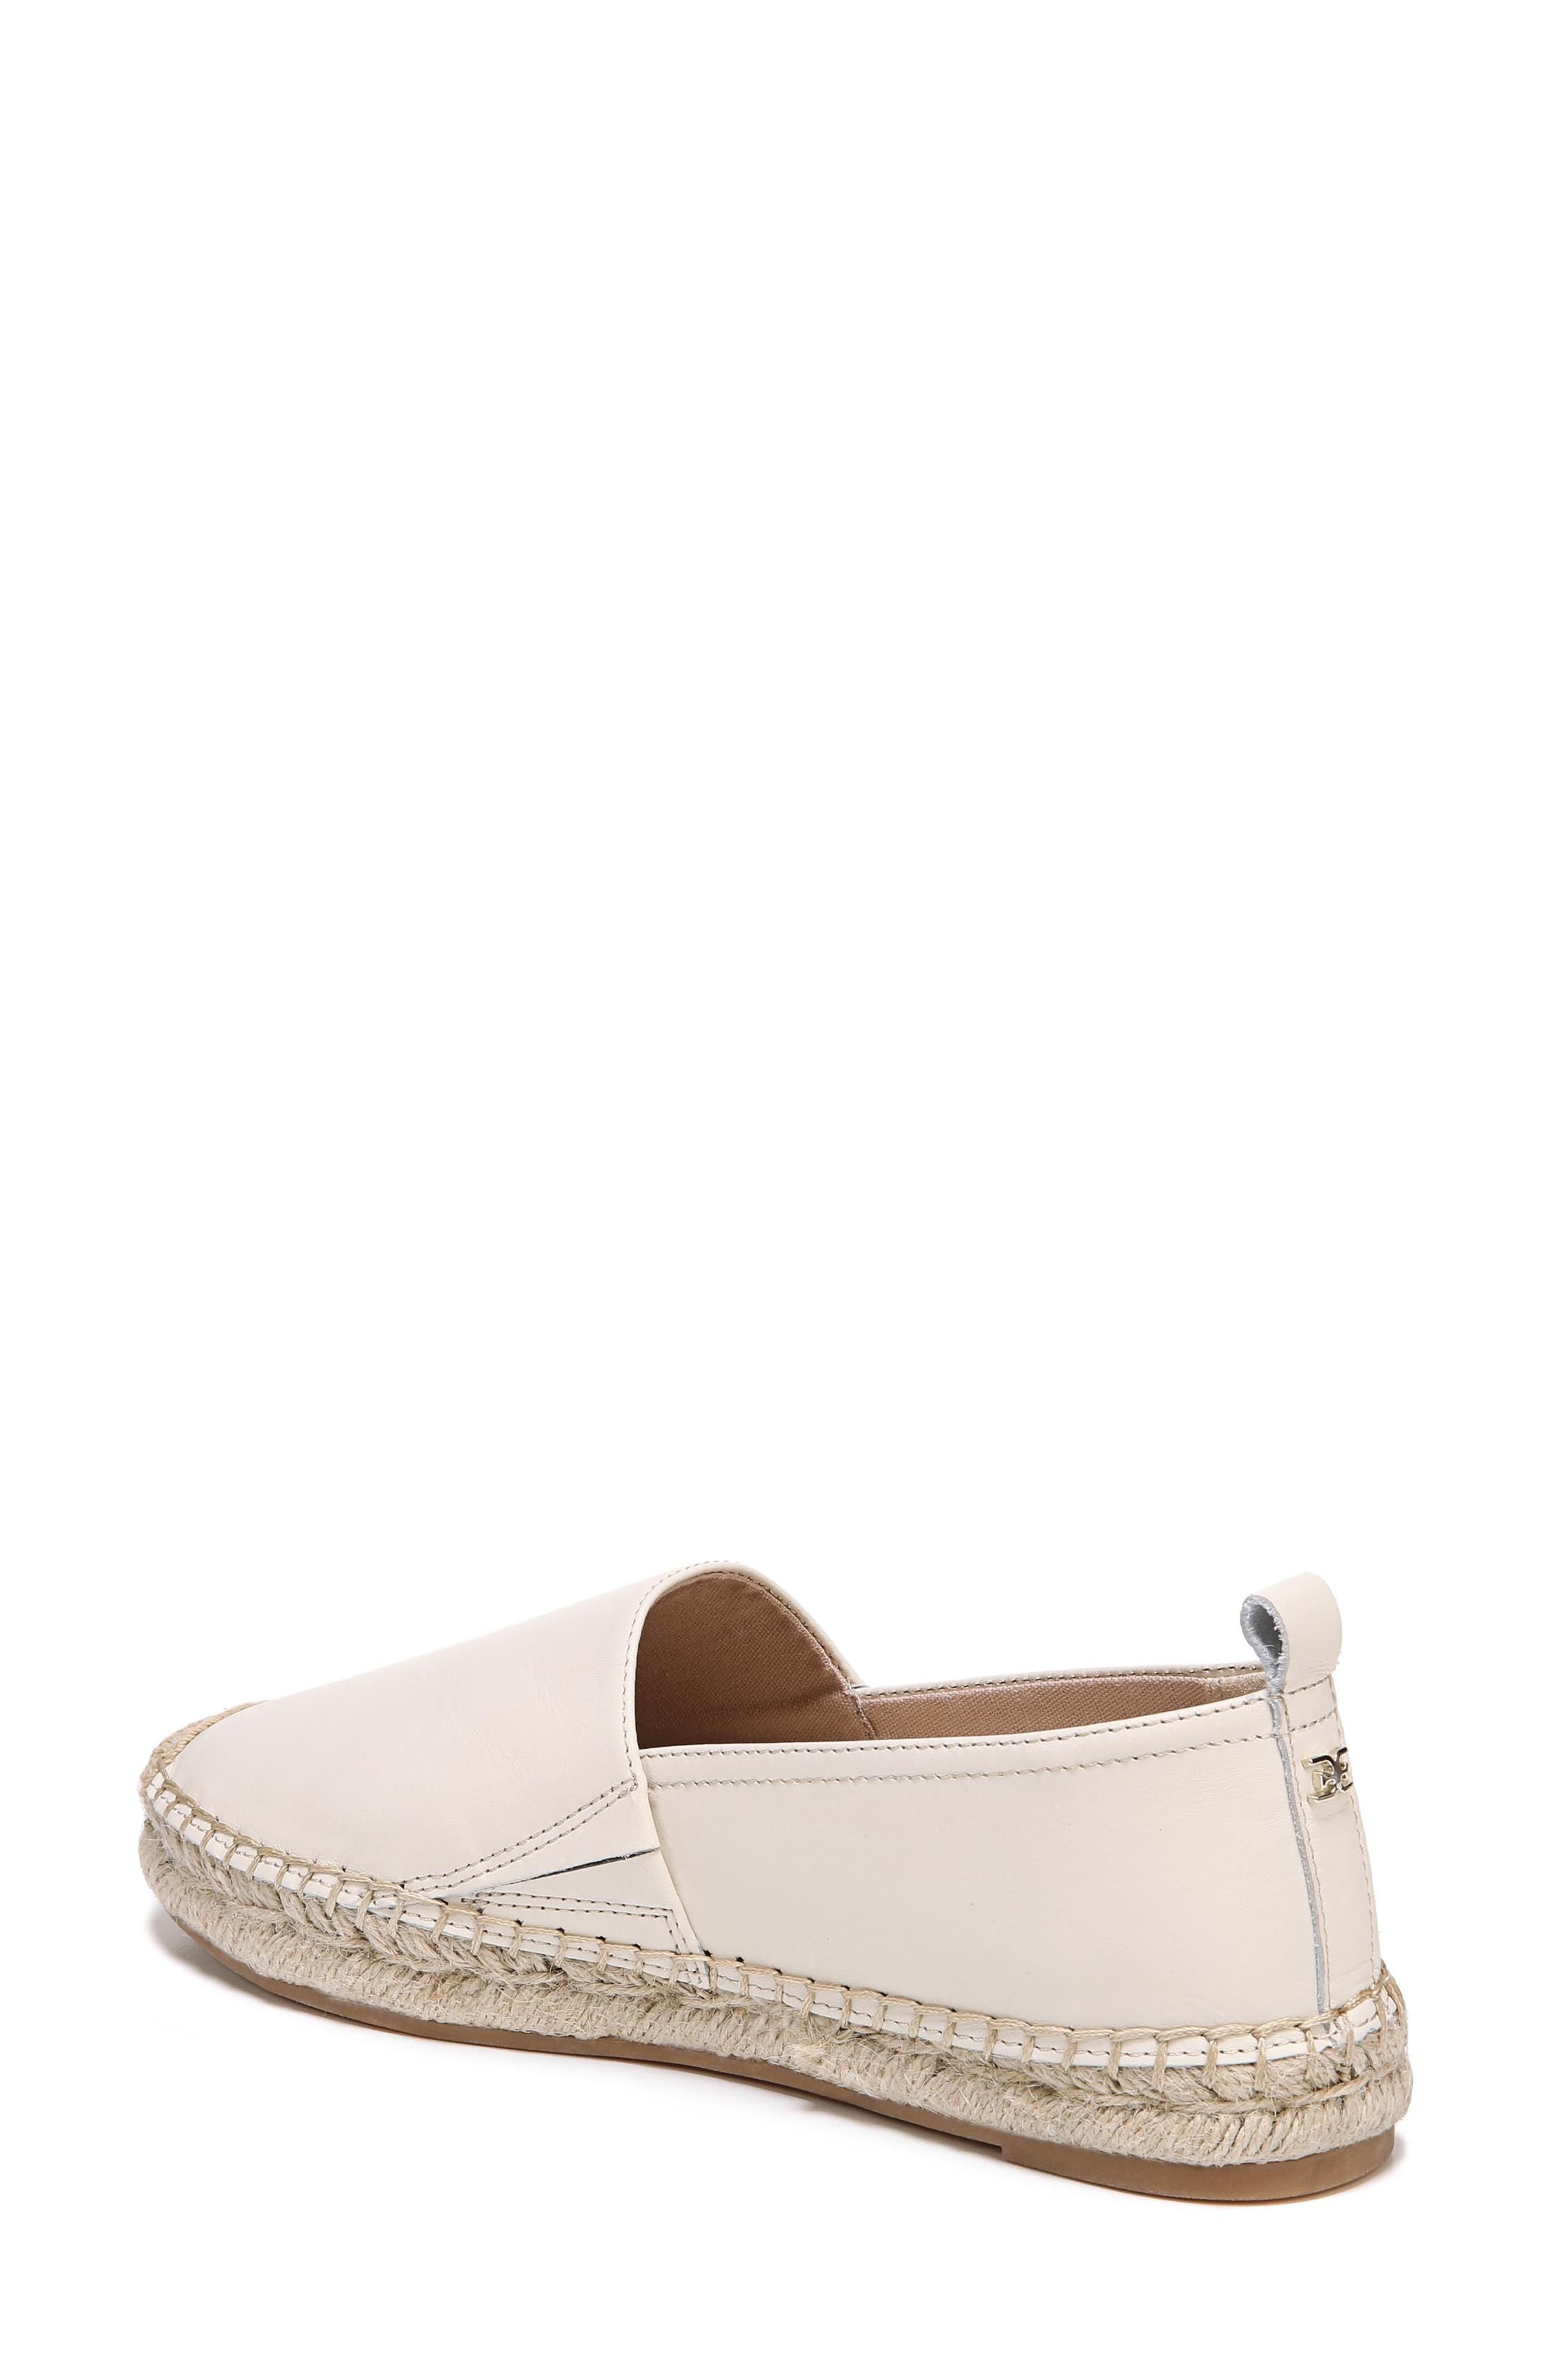 Khloe Espadrille Flat,                             Alternate thumbnail 2, color,                             Modern Ivory Leather